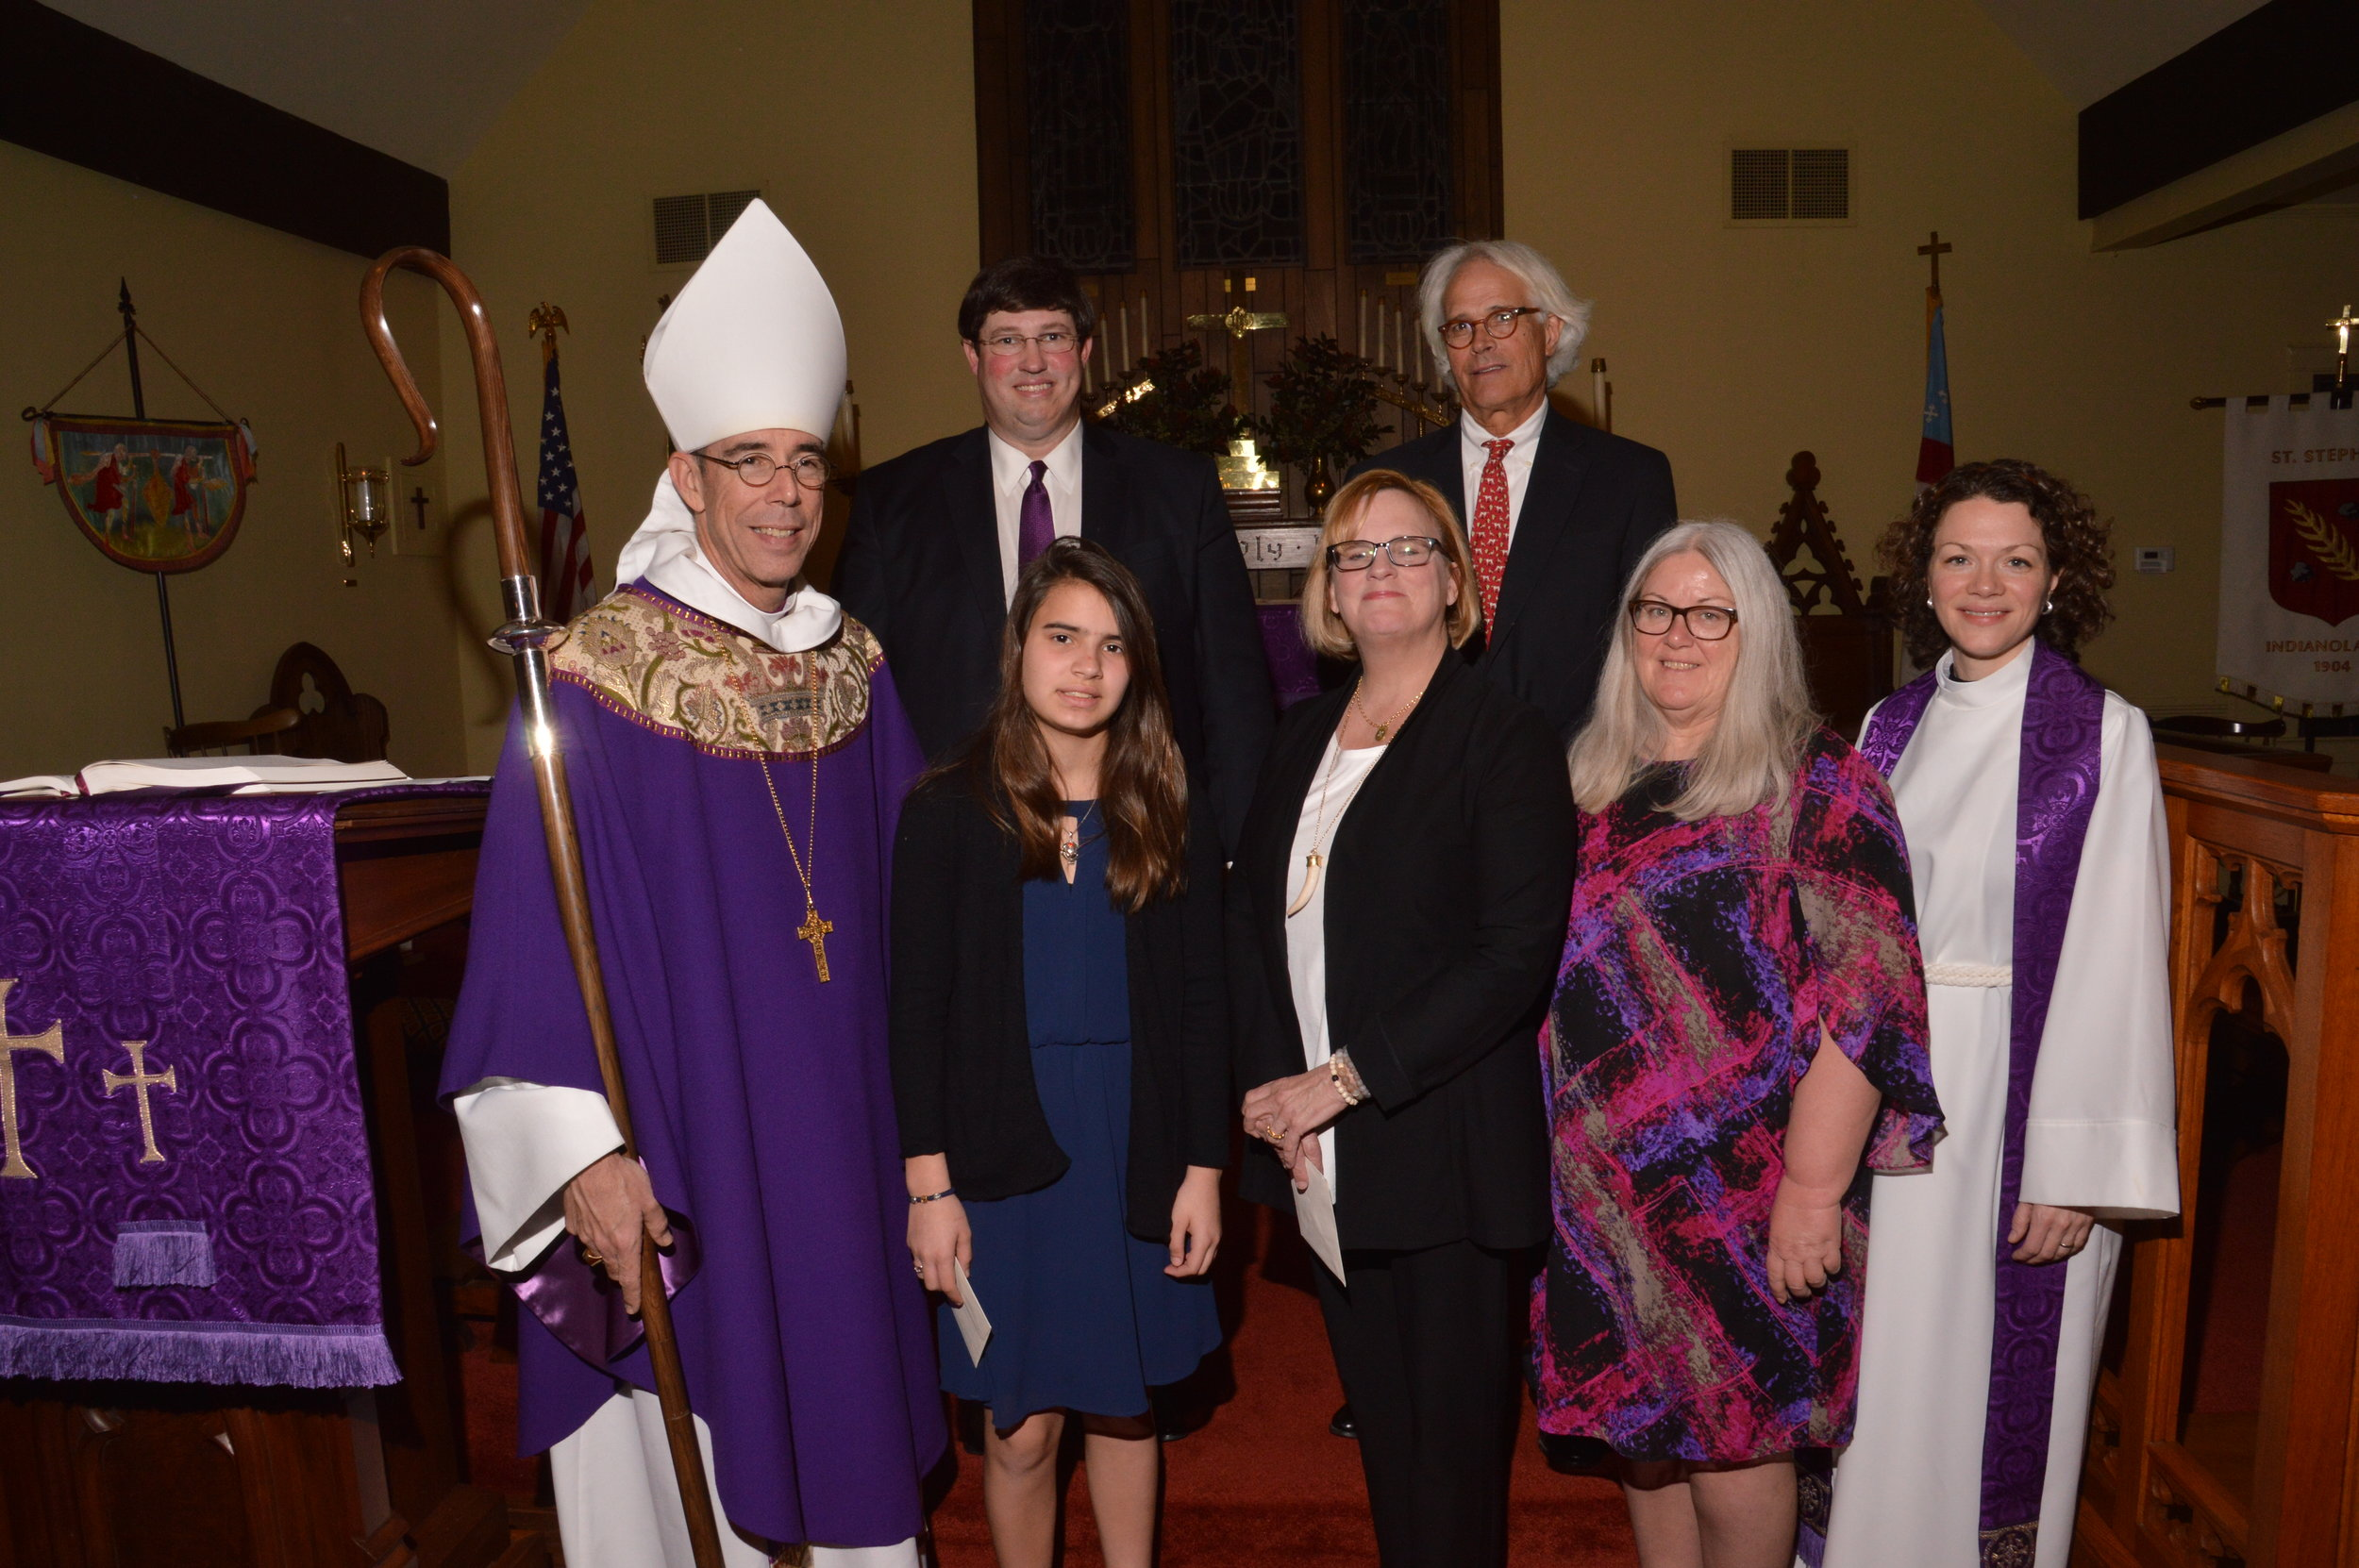 Bishop Brian Seage Confirms New Members at St. Stephen's